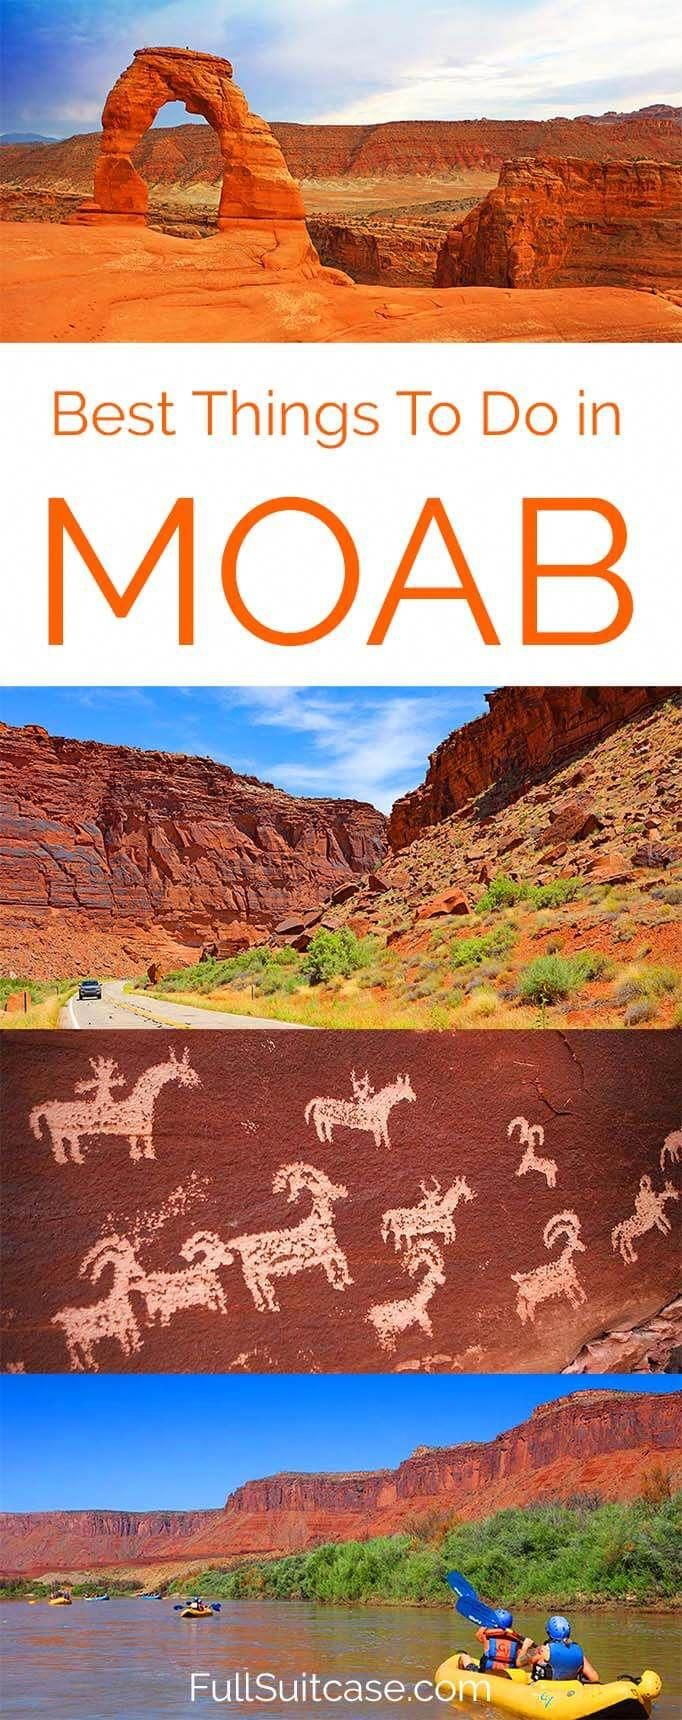 5 Best Things To Do in Moab Utah (Must See and Hidden Gems) #usatravel